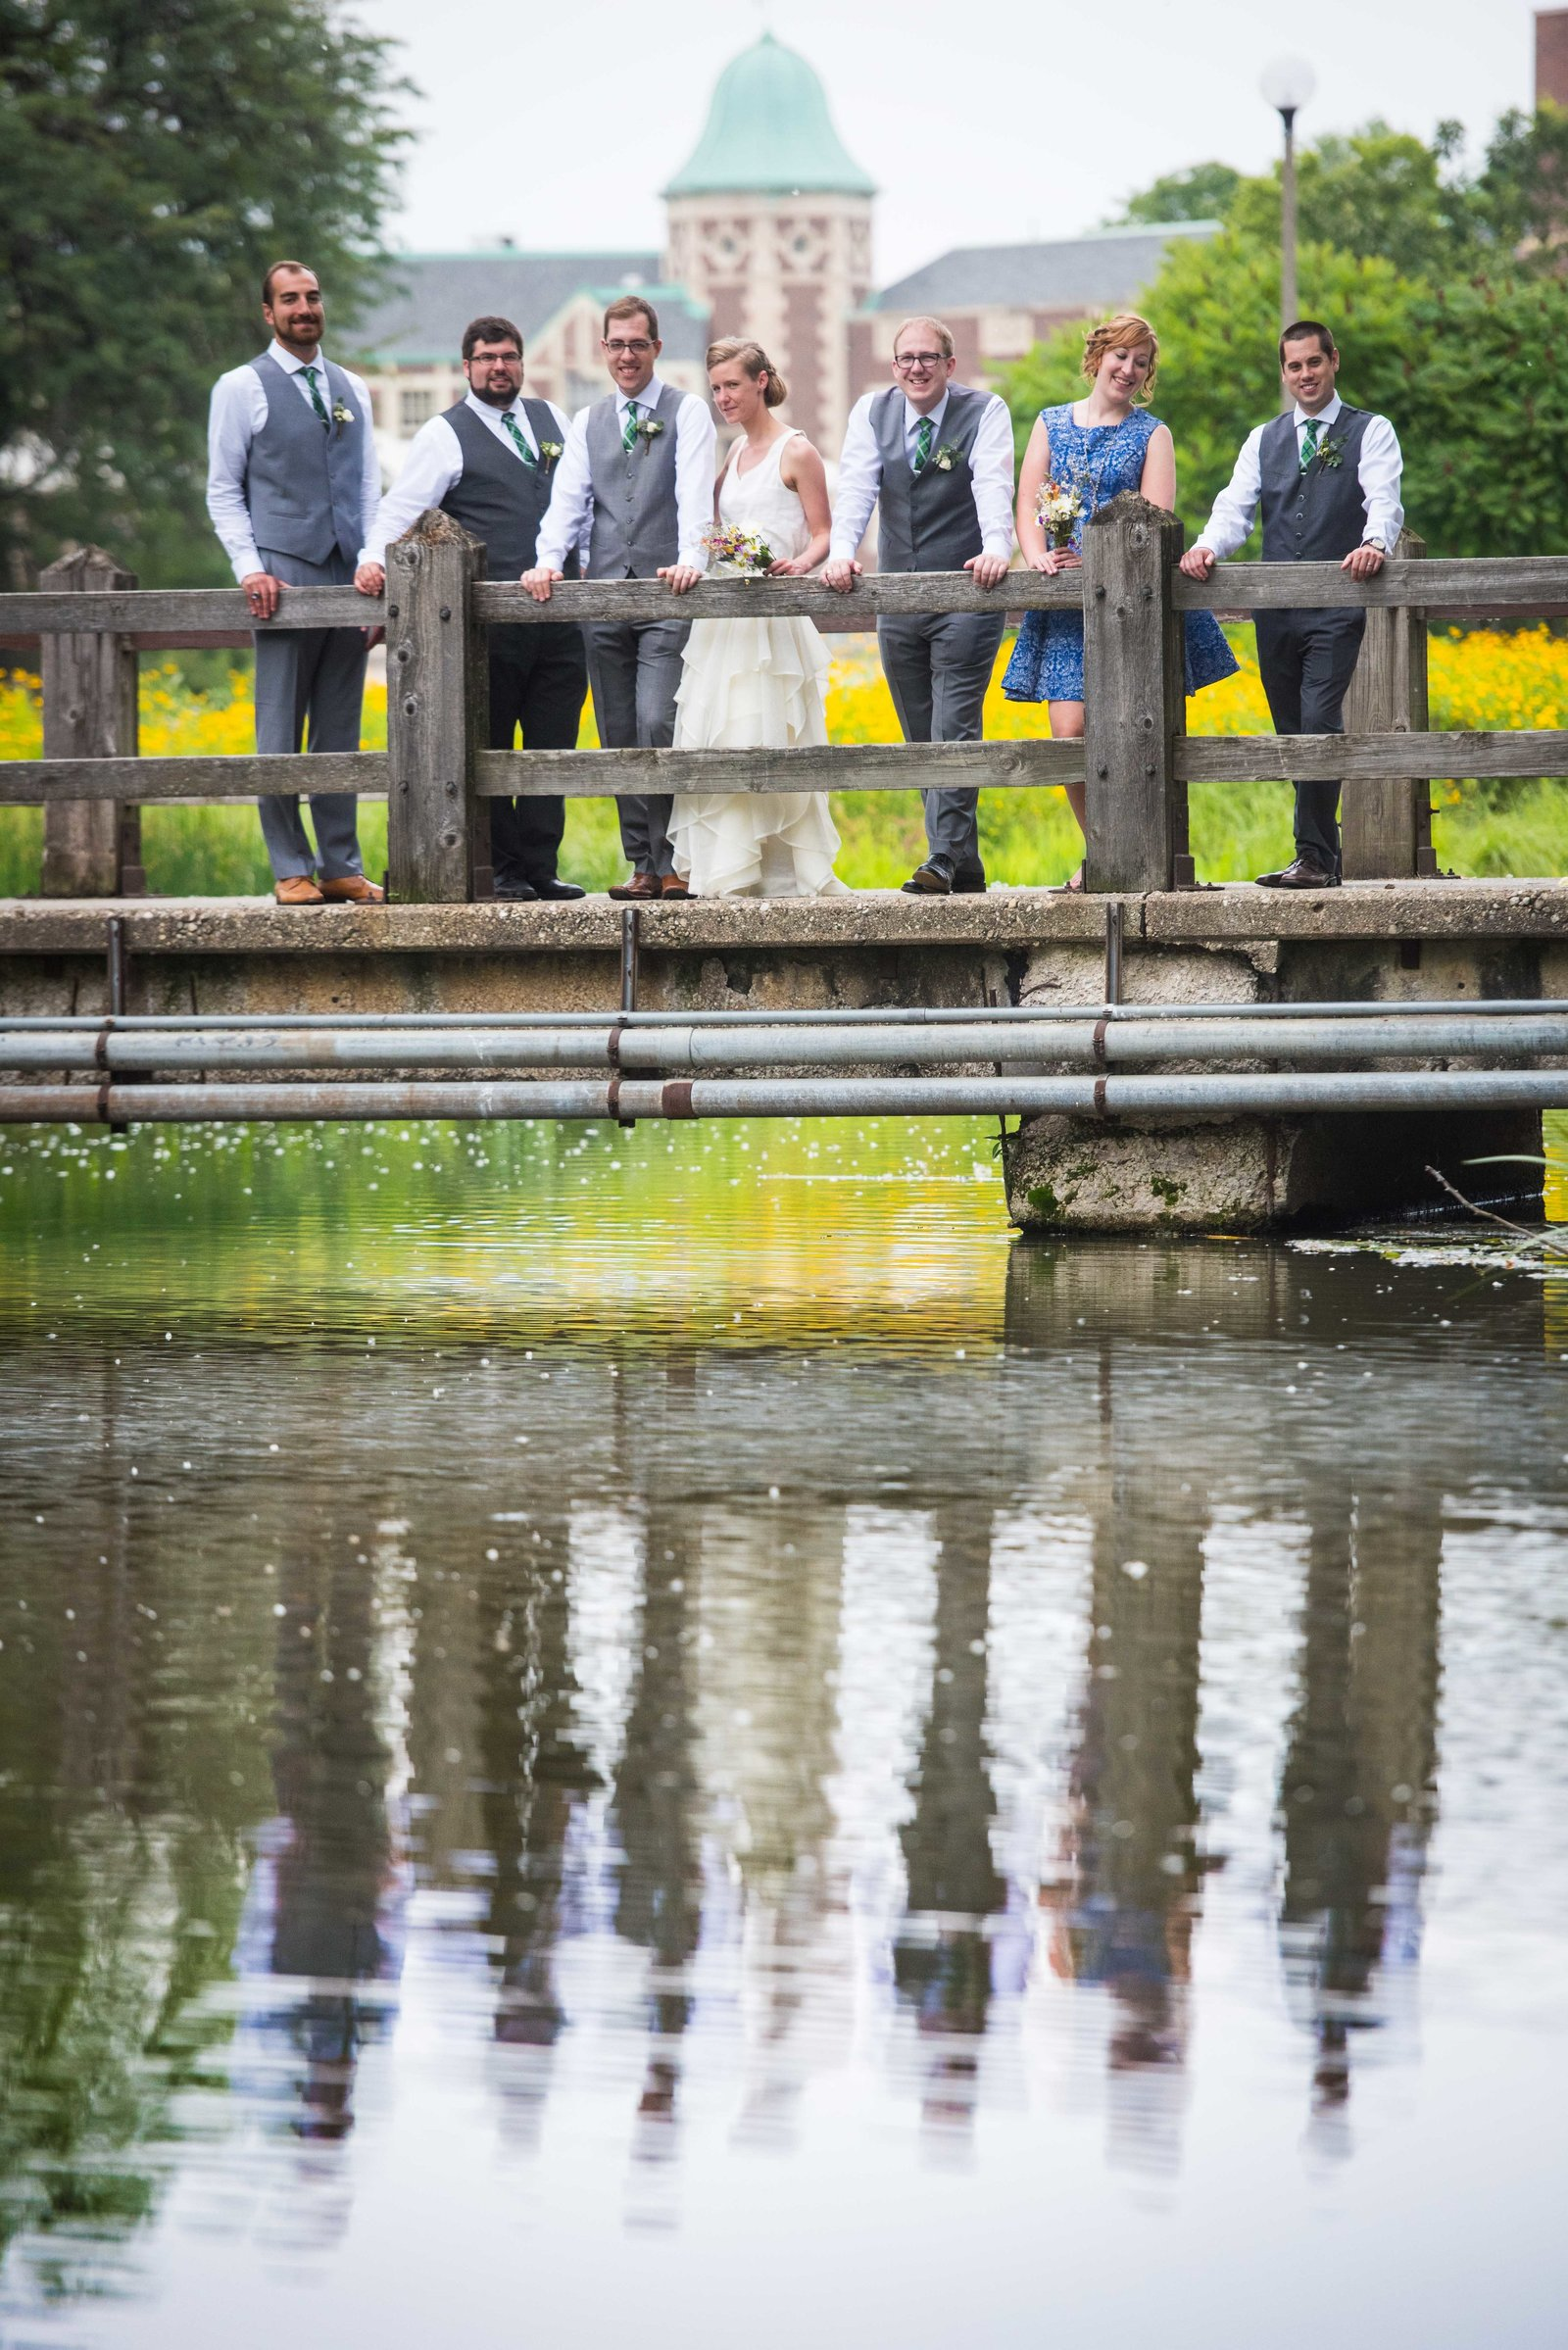 Bridal party poses on bridge at Humboldt Park, Chicago.